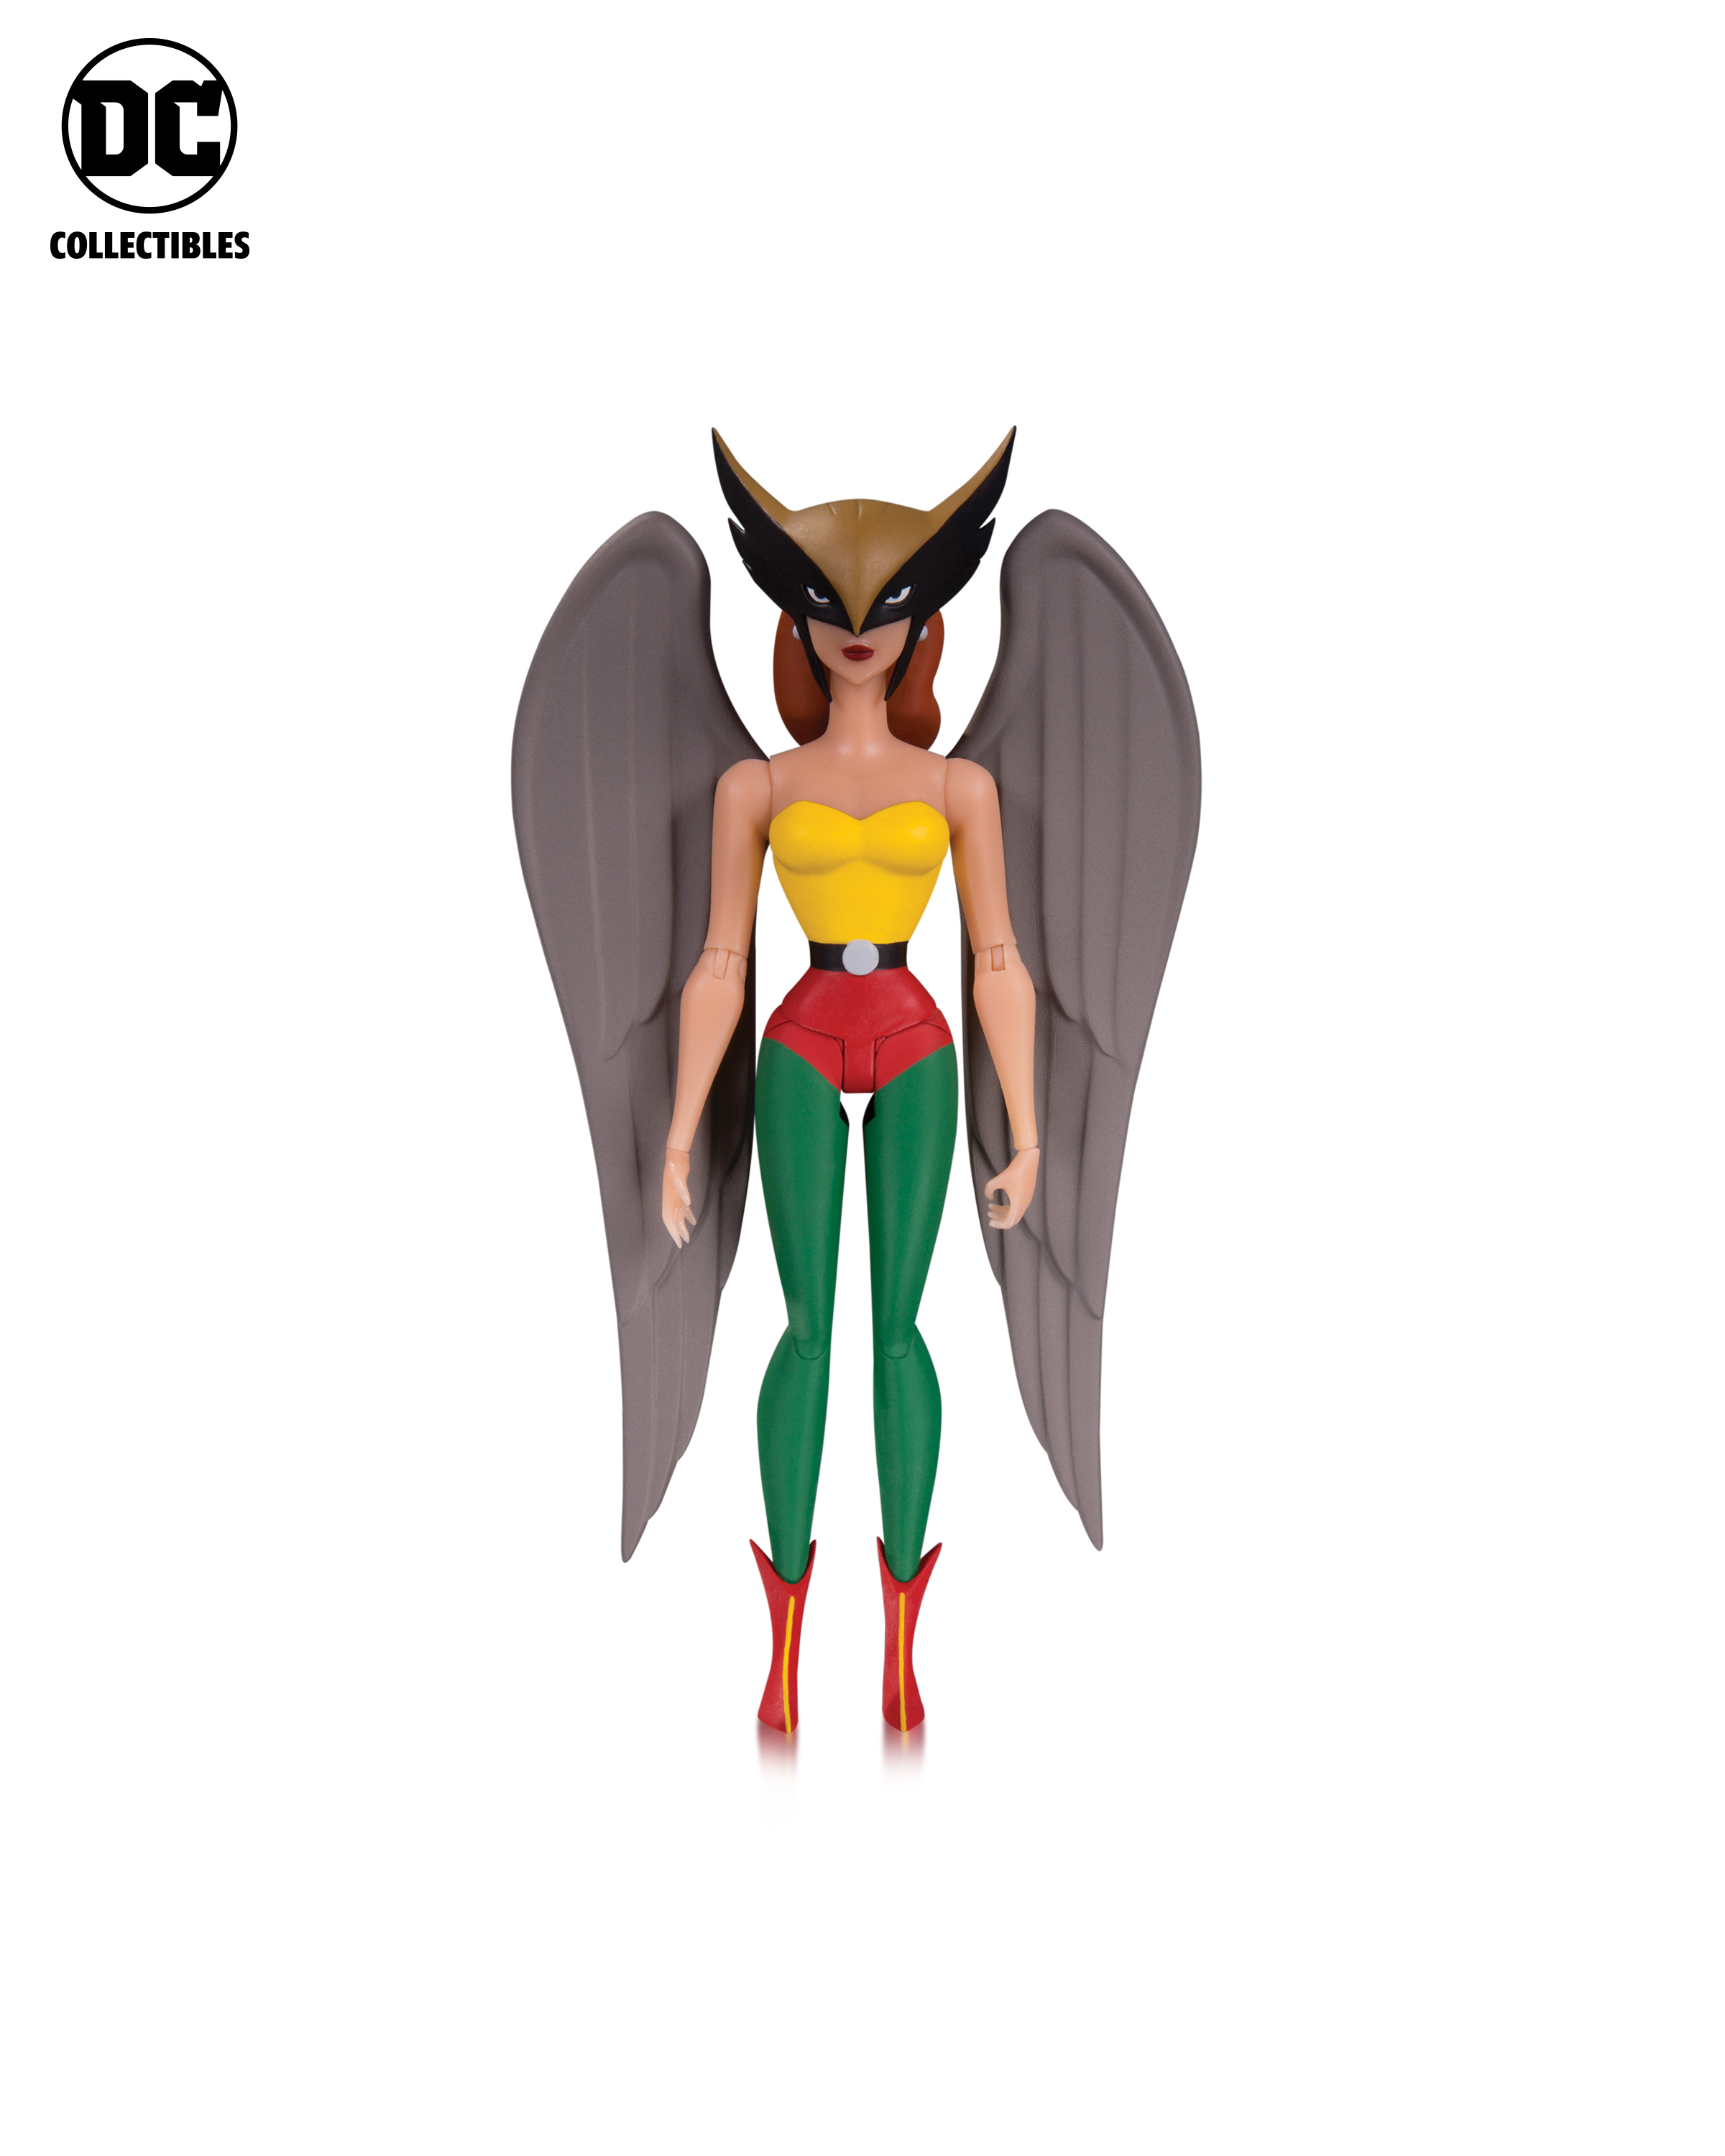 Hawkgirl: JUSTICE LEAGUE Animated Figures Coming This Fall From DC